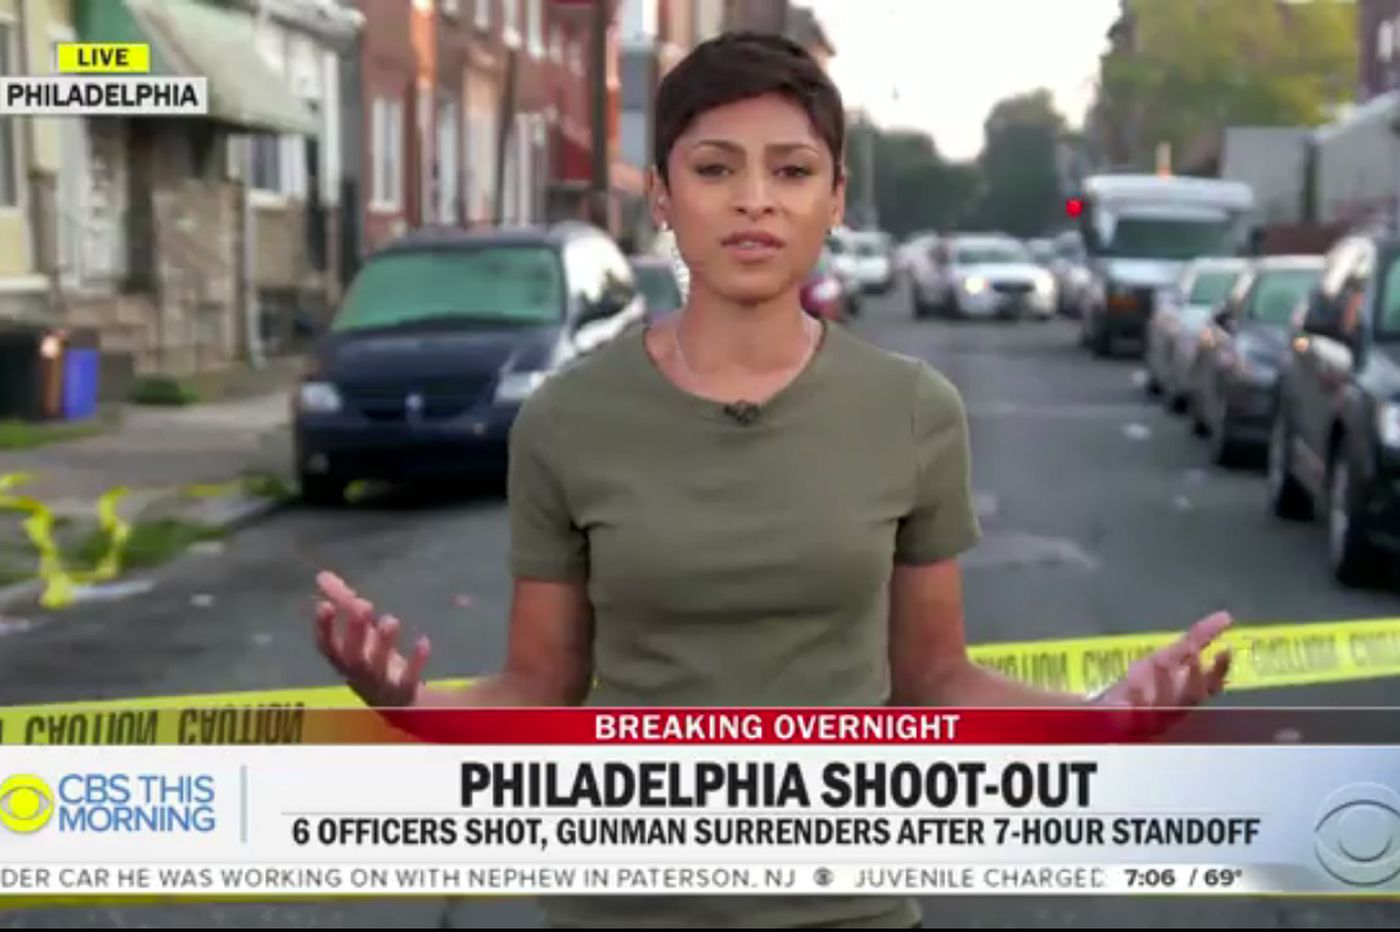 Philadelphia police shooting quickly fades as a national news story